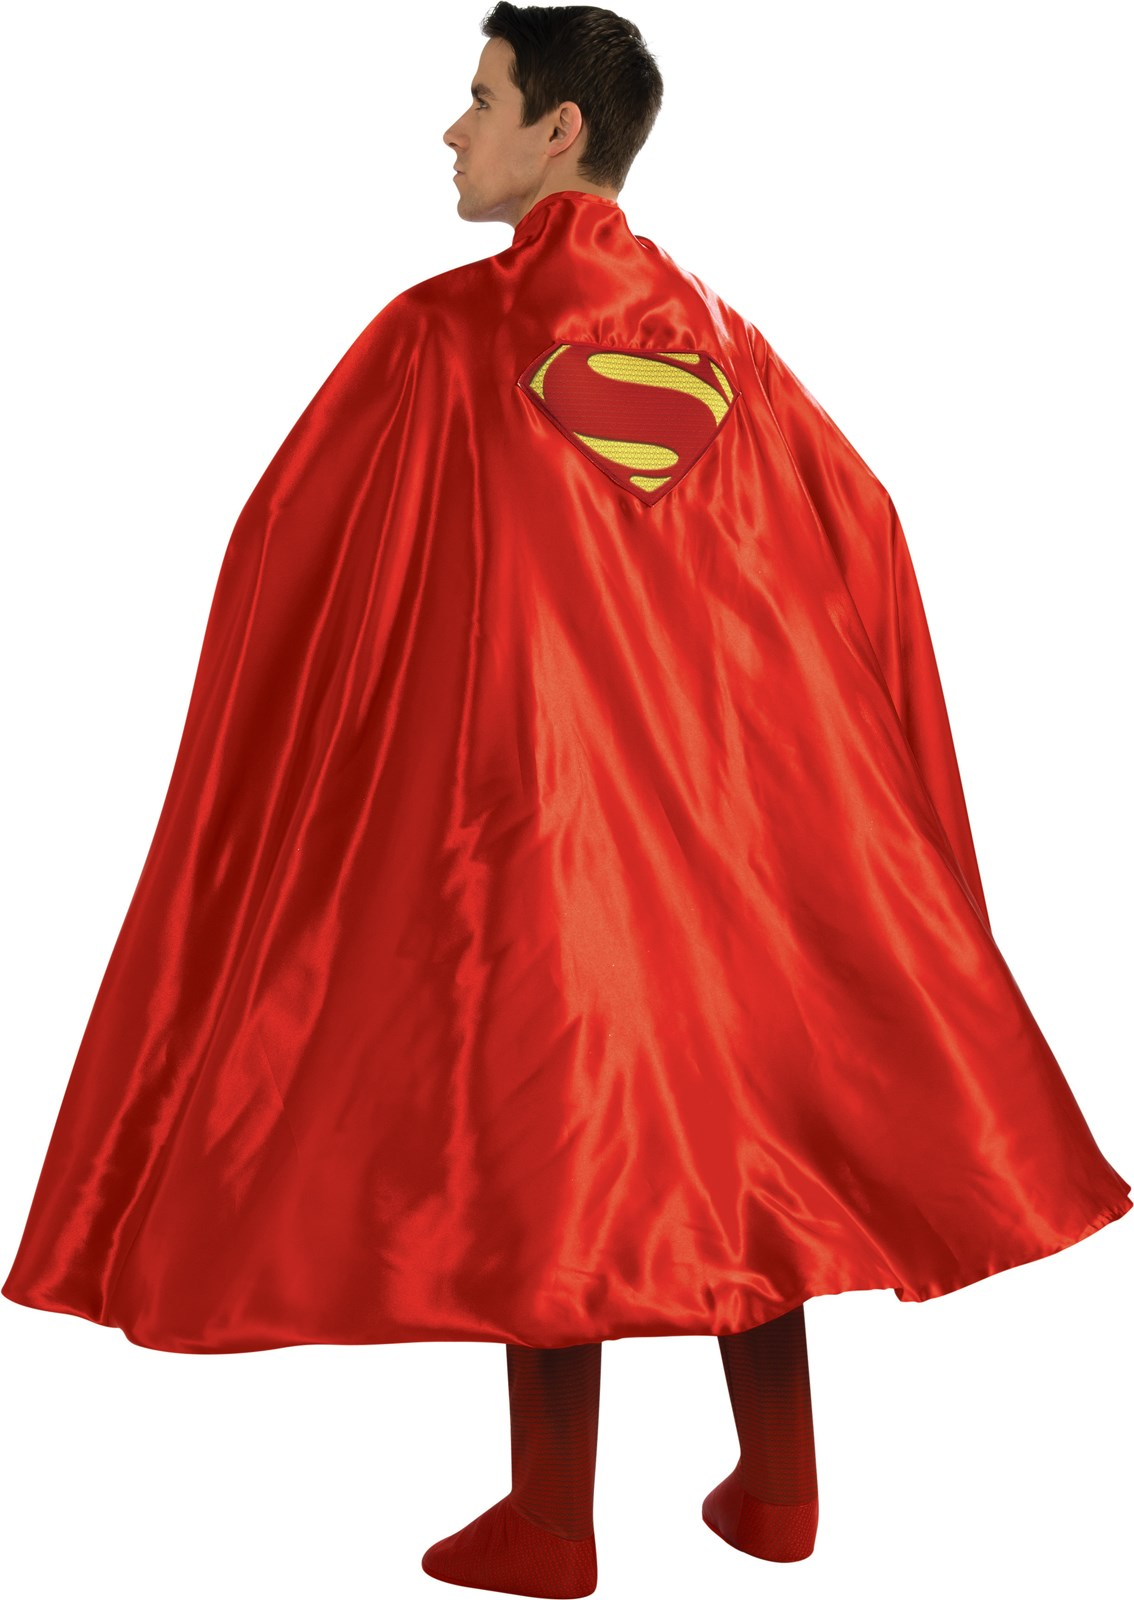 how to make a superman costume adults